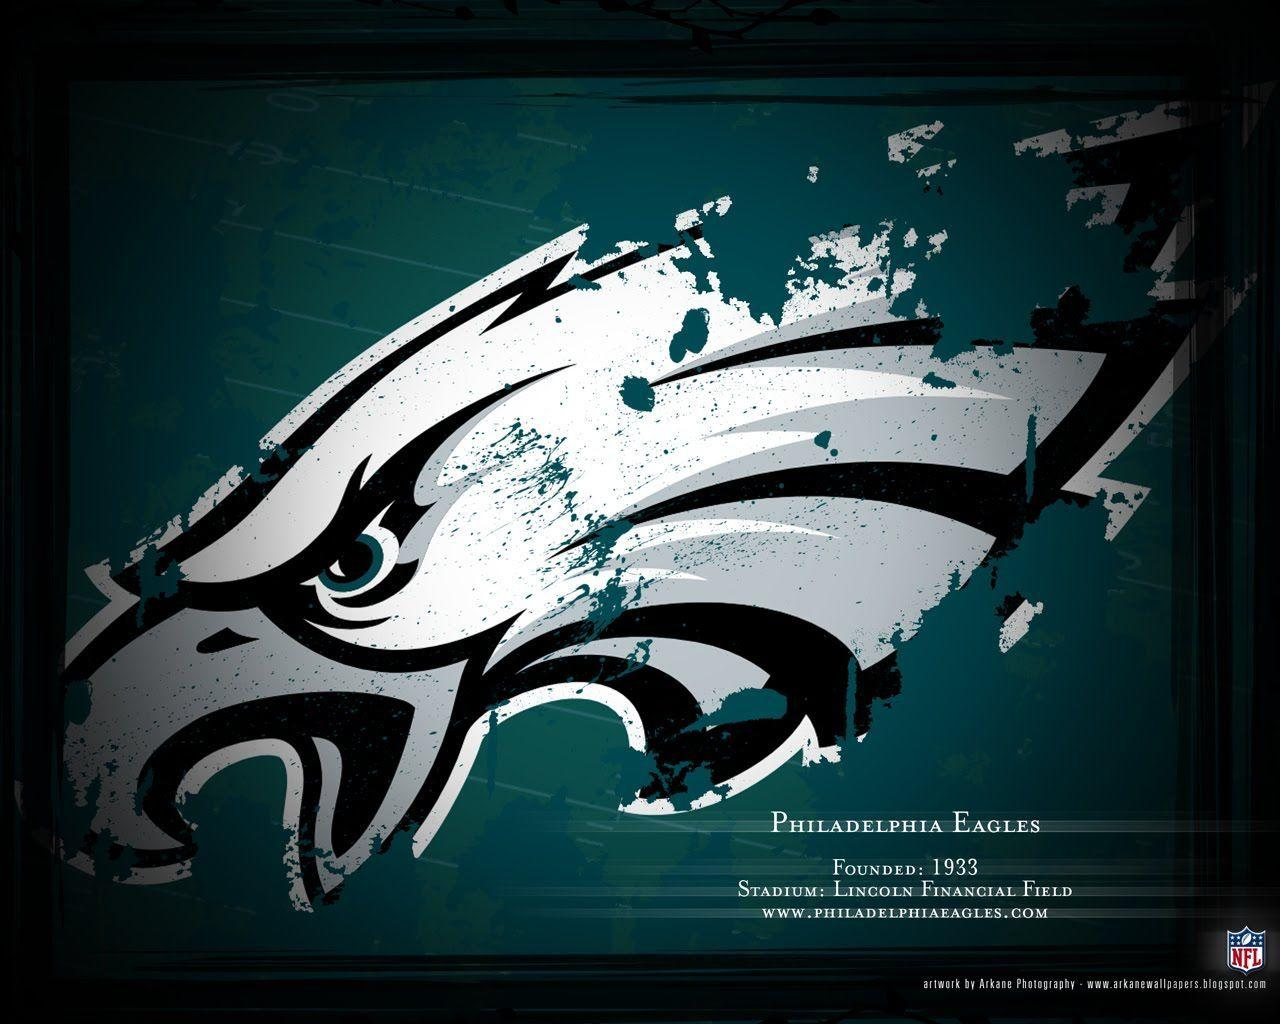 Philadelphia Eagles logo 2013 Philadelphia Eagles logo